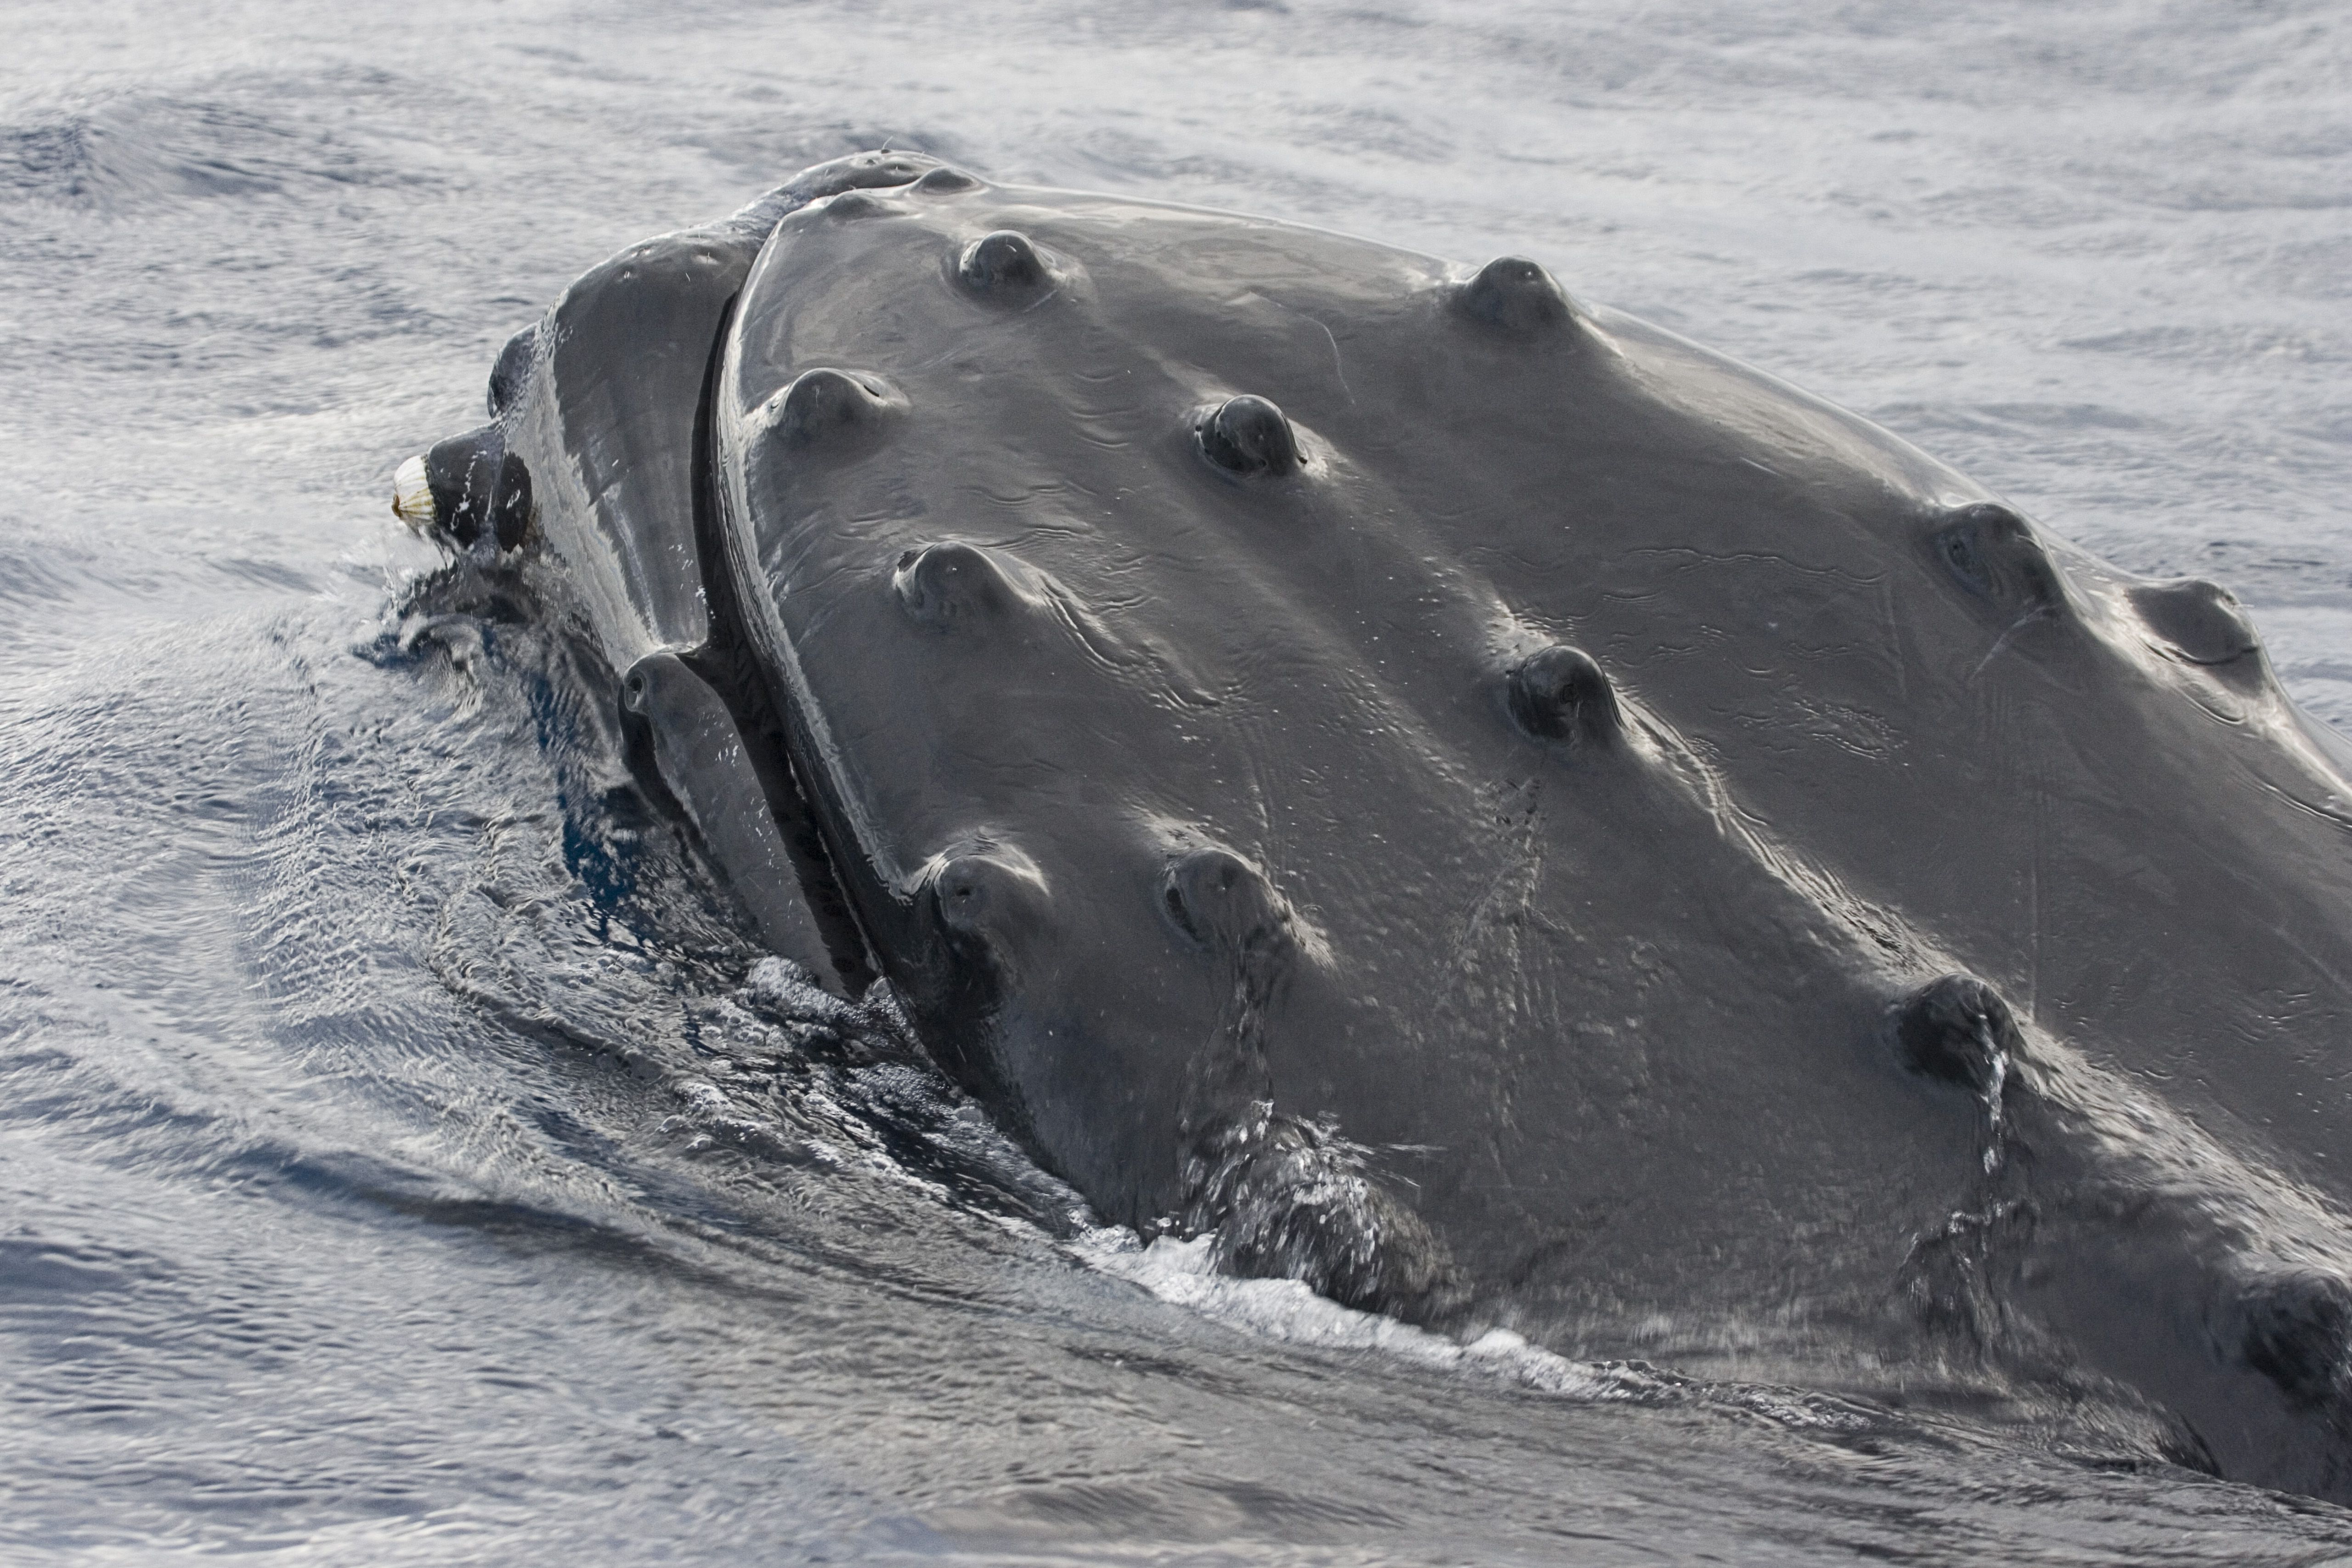 Humpback whales are the only whales with tubercles.